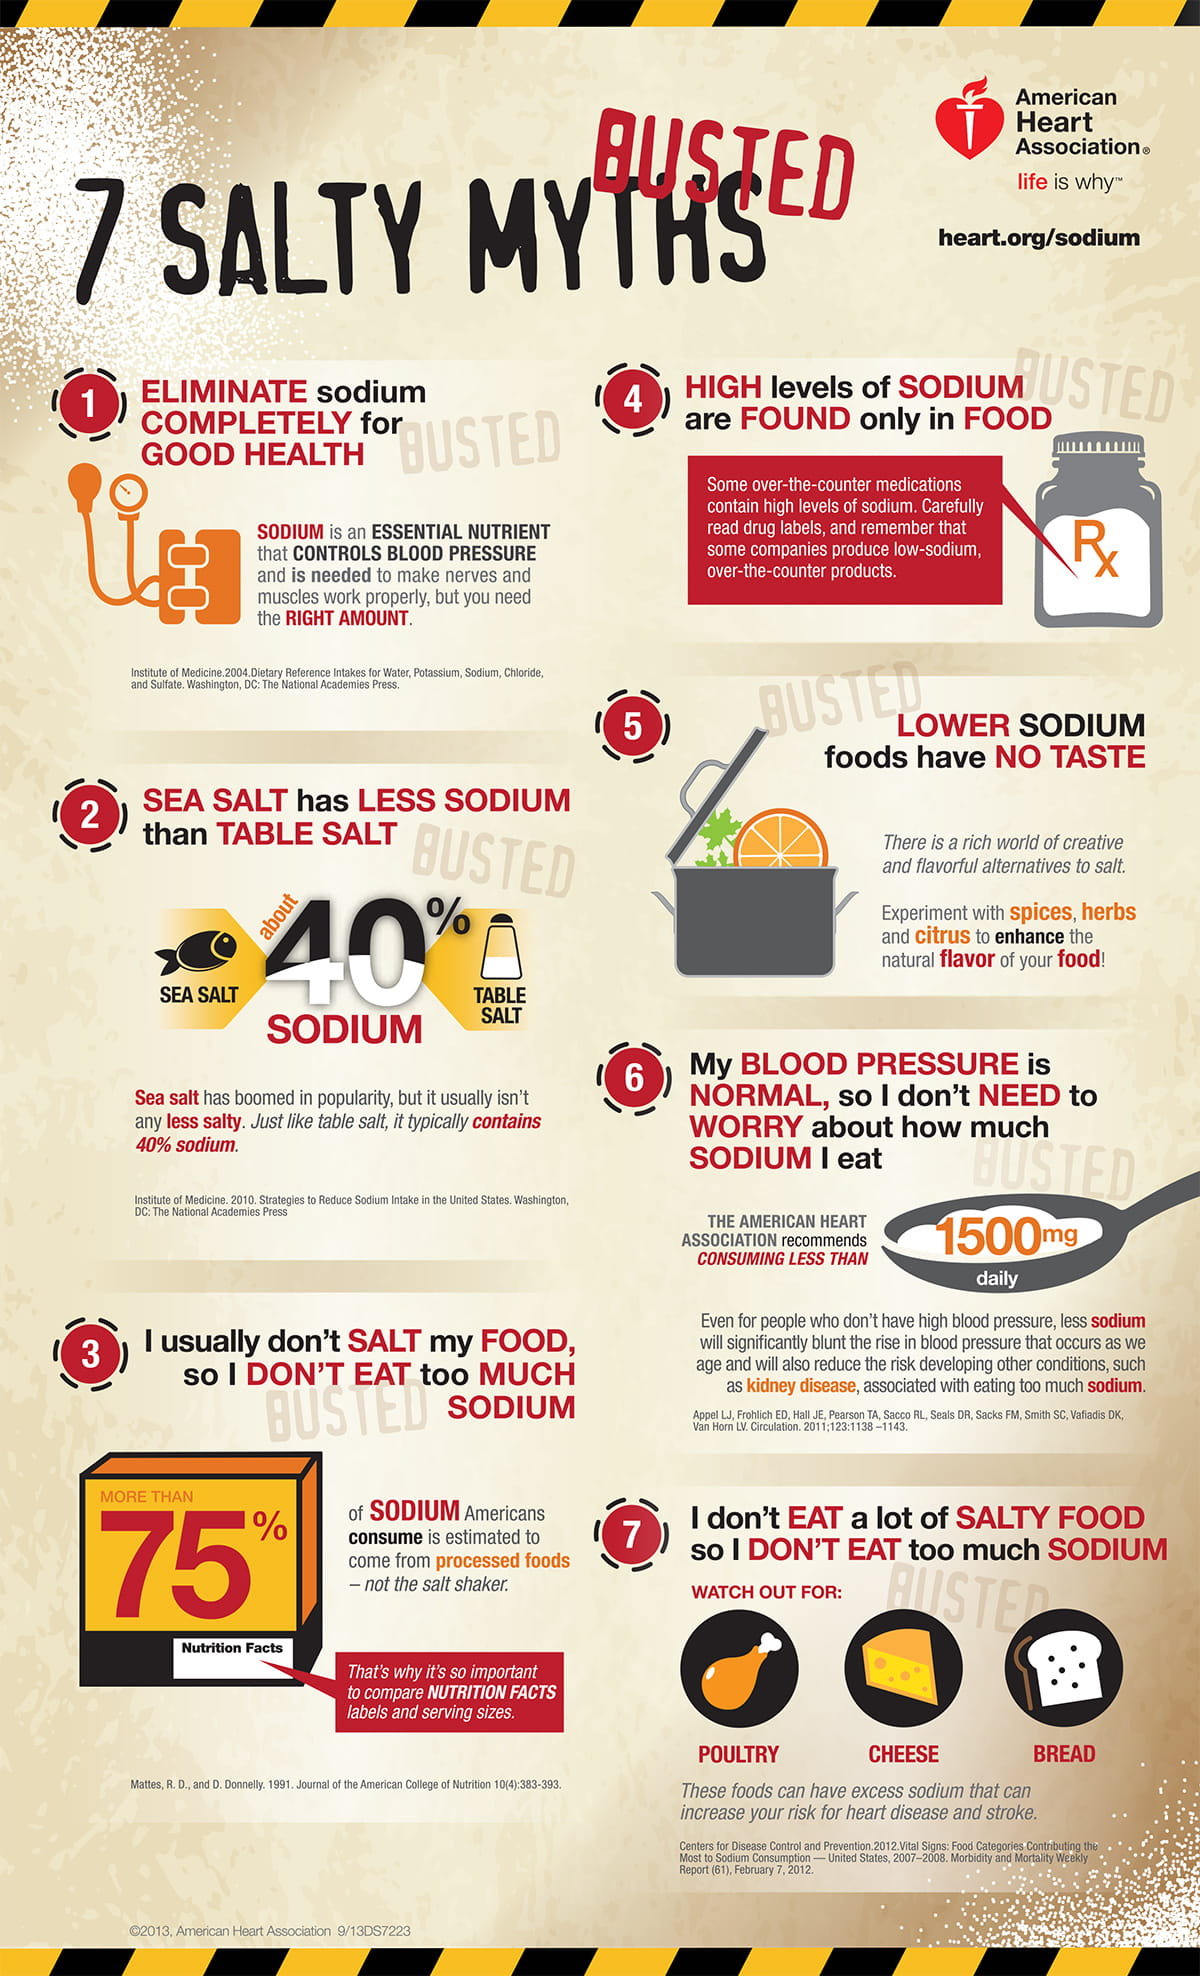 7 Salty Sodium Myths Busted Infographic American Heart